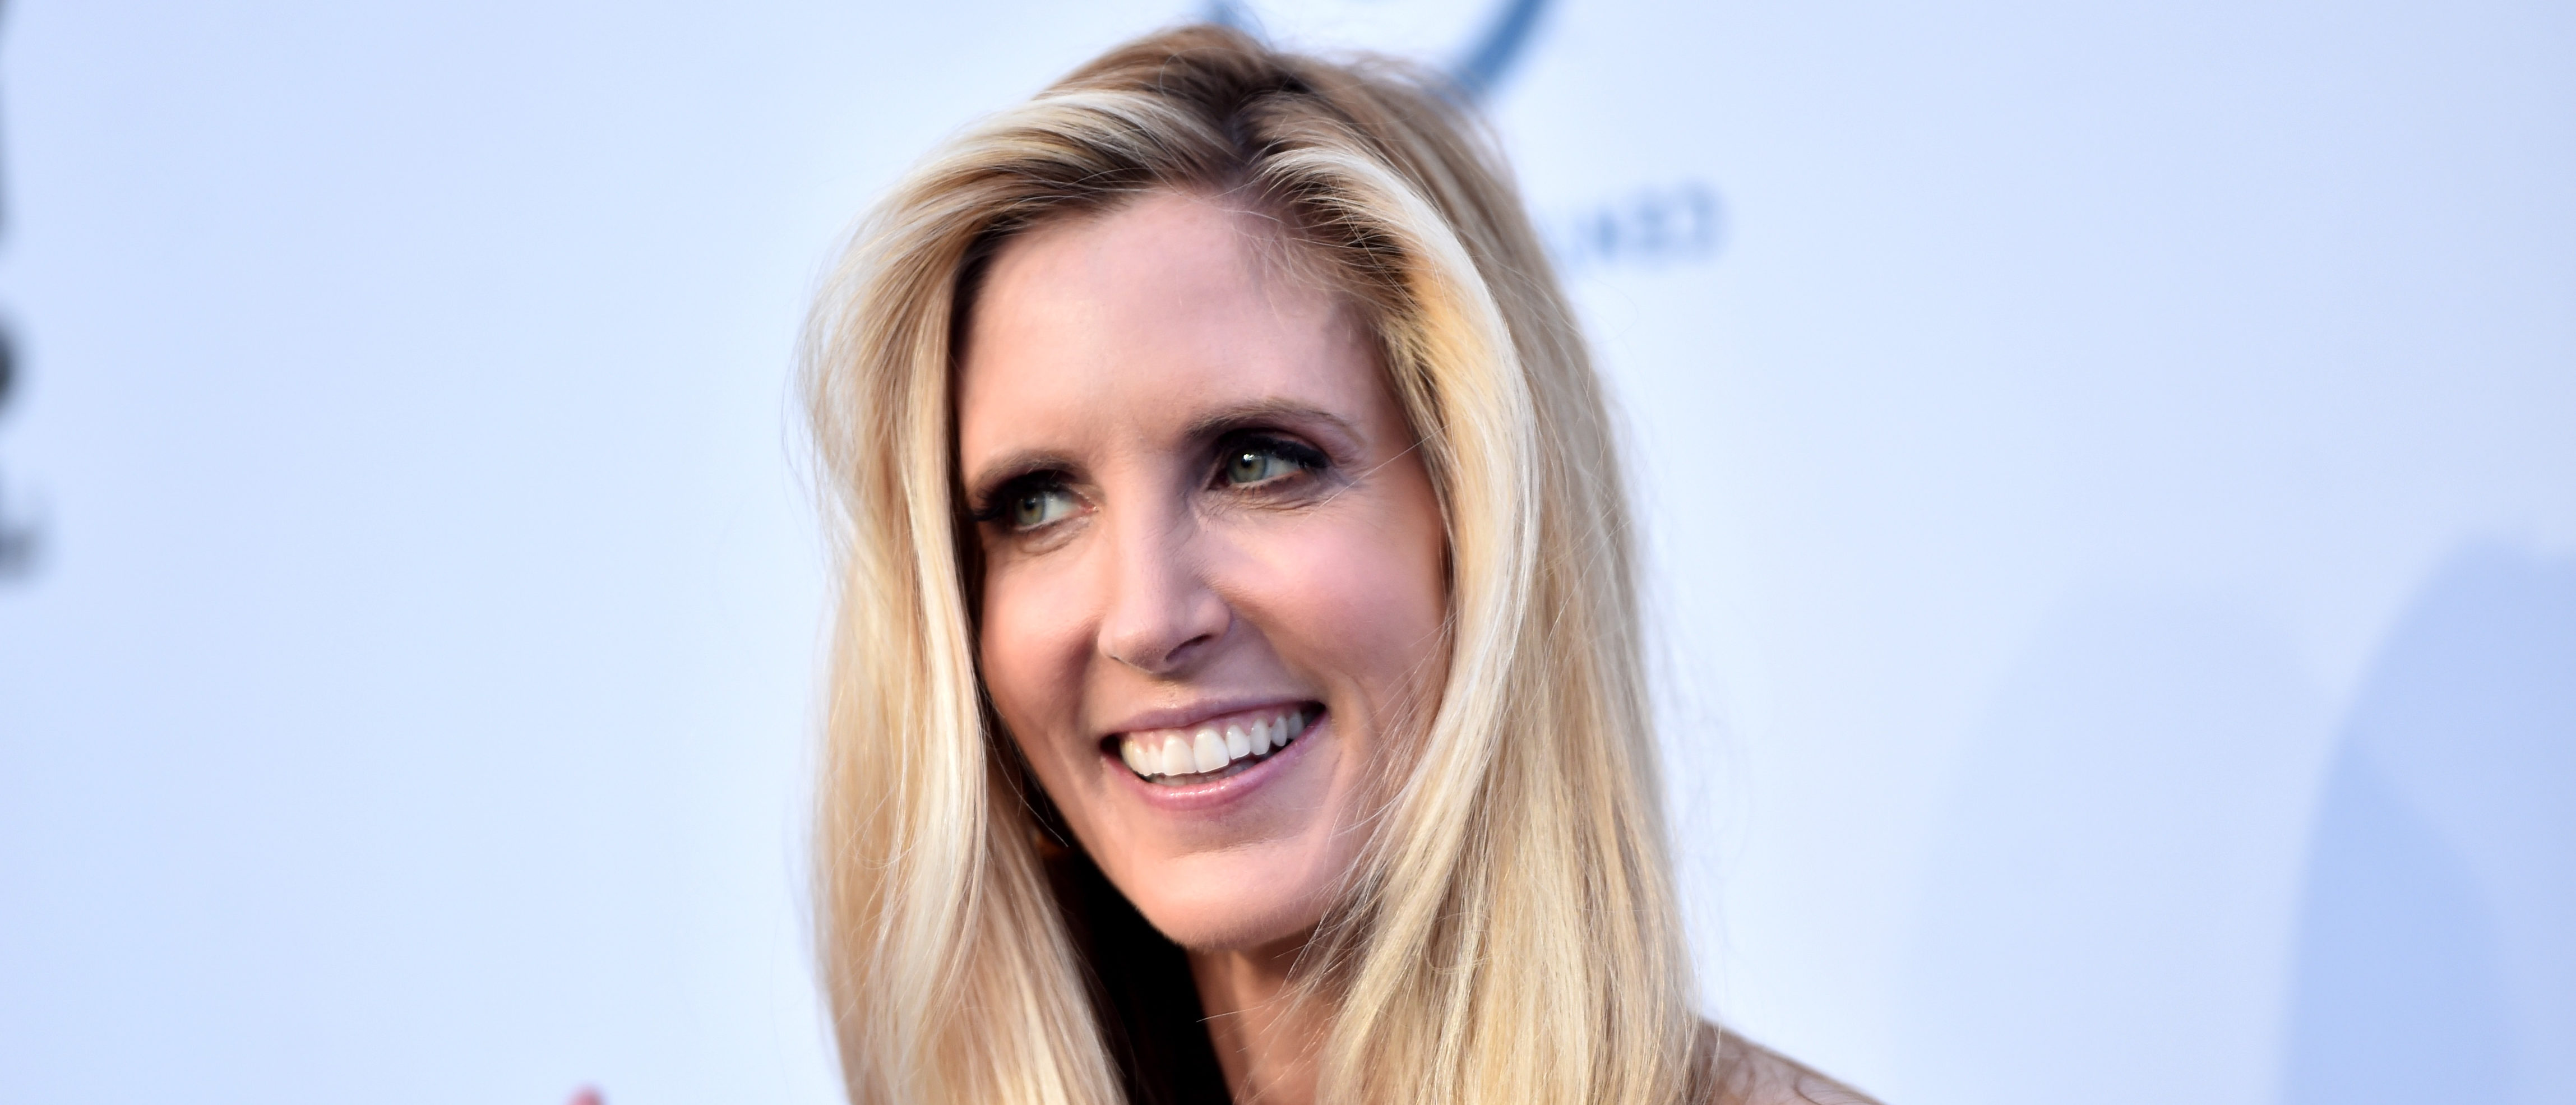 LOS ANGELES, CA - AUGUST 27: Political commentator and author Ann Coulter attends The Comedy Central Roast of Rob Lowe at Sony Studios on August 27, 2016 in Los Angeles, California. (Photo by Alberto E. Rodriguez/Getty Images)